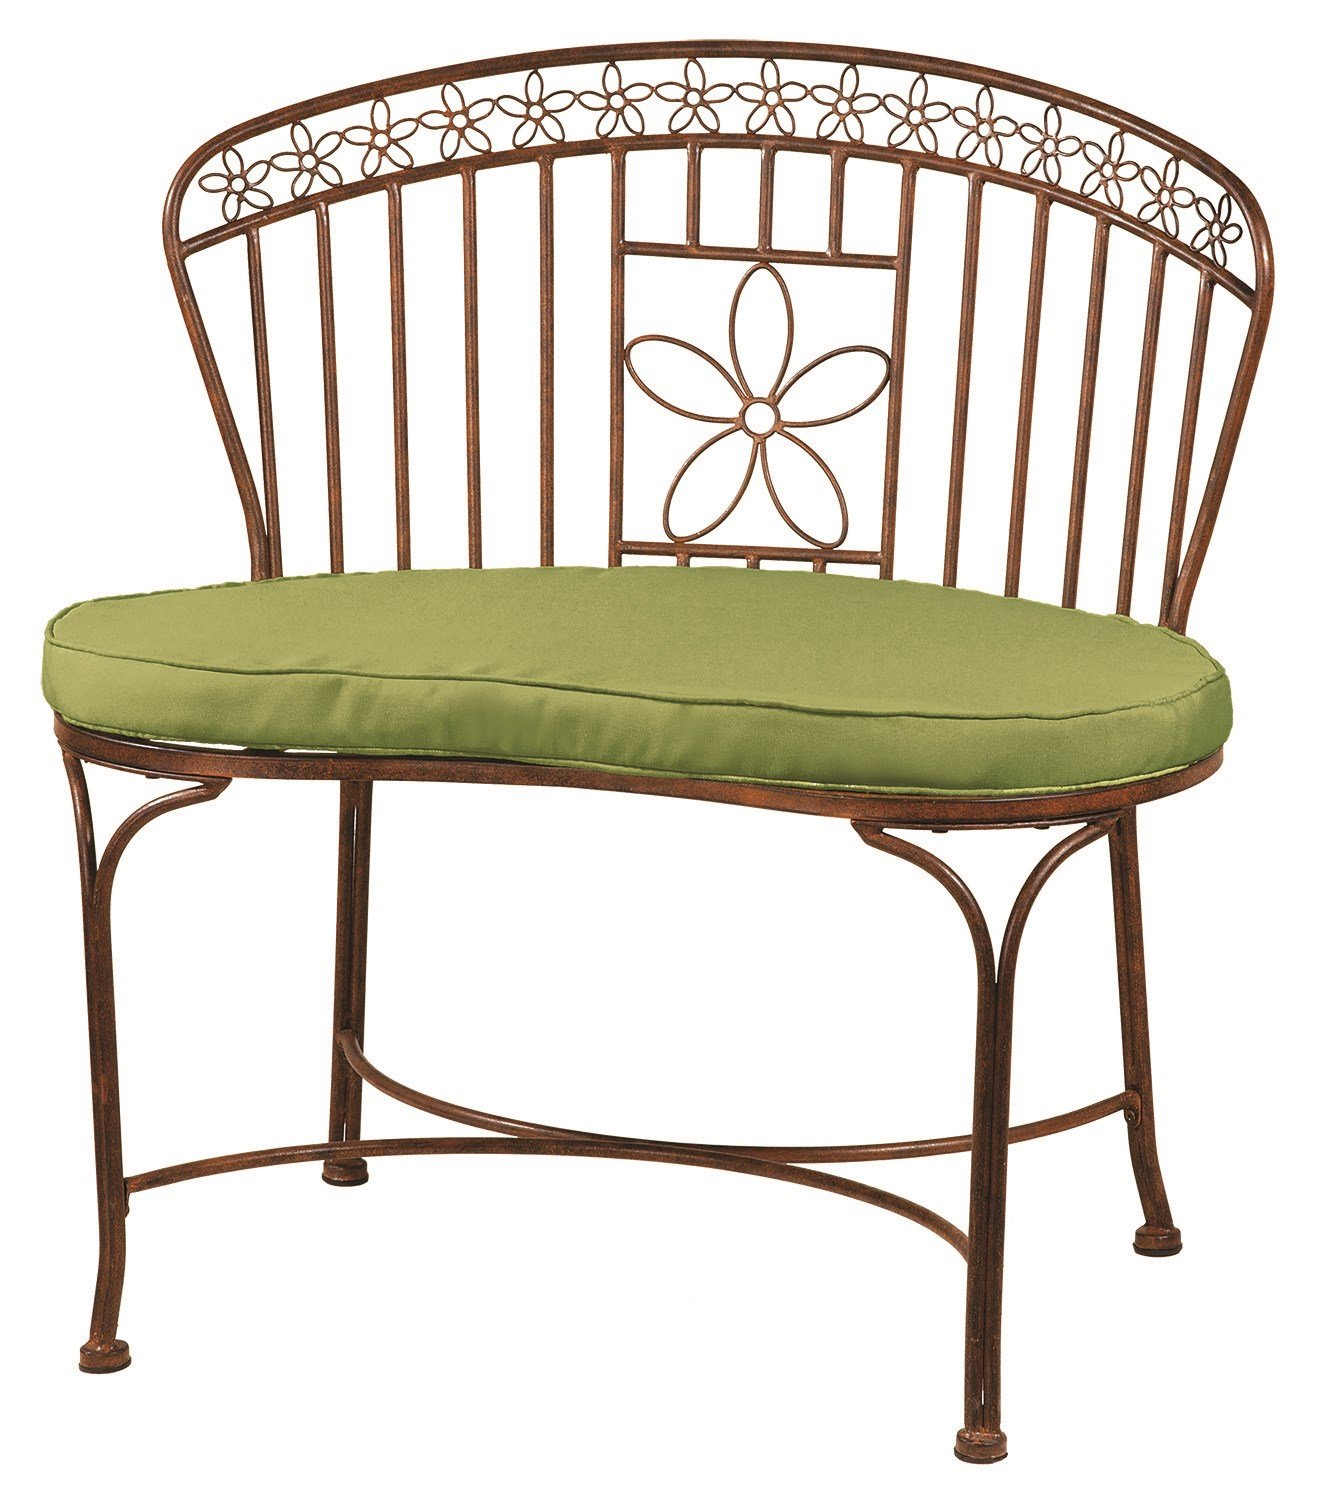 Deer Park Ironworks Steel Daisy Ribbon Bench BE210